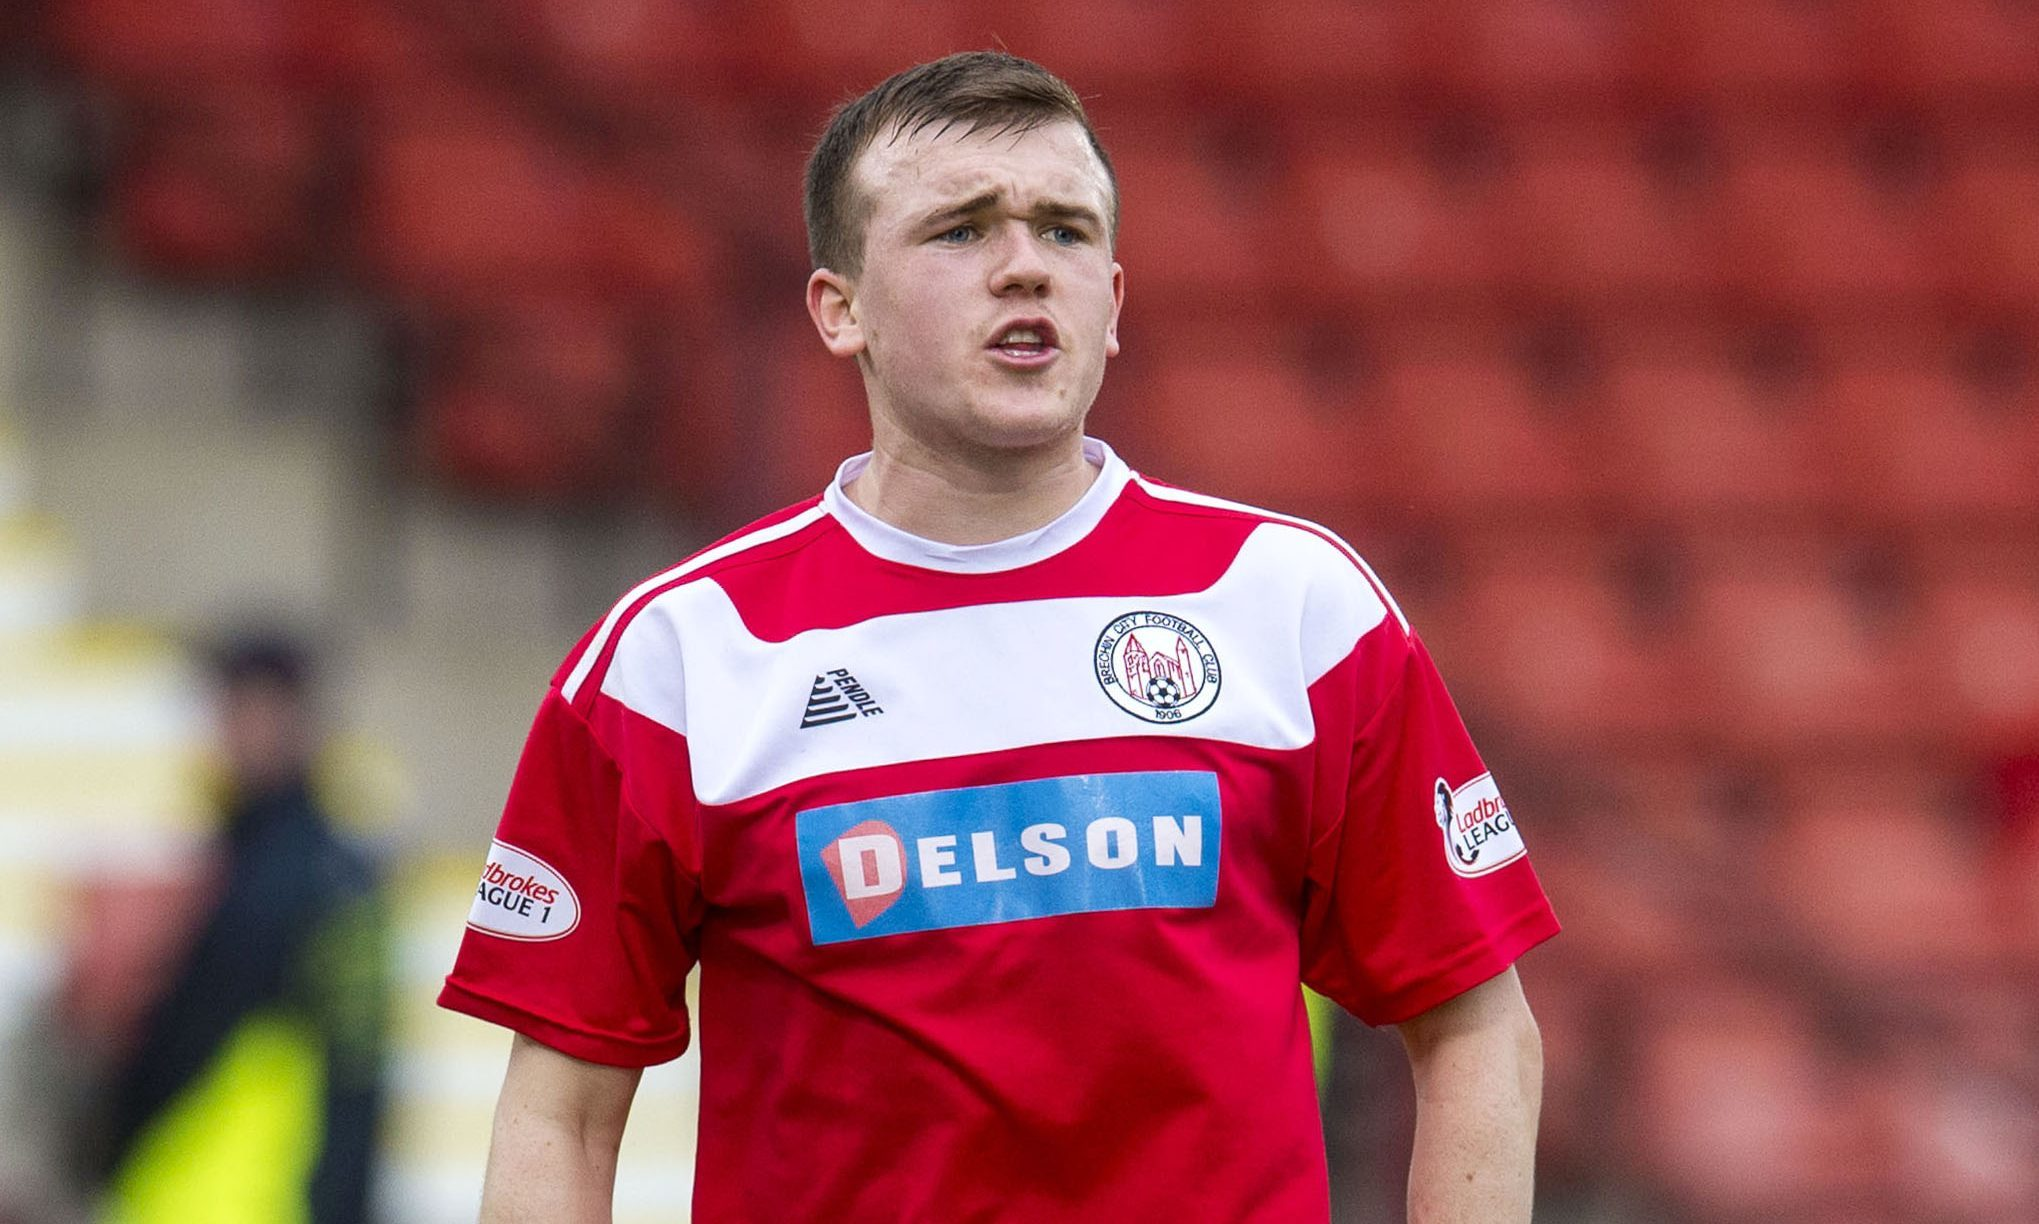 Liam Watt should be back in the red and white of Brechin.